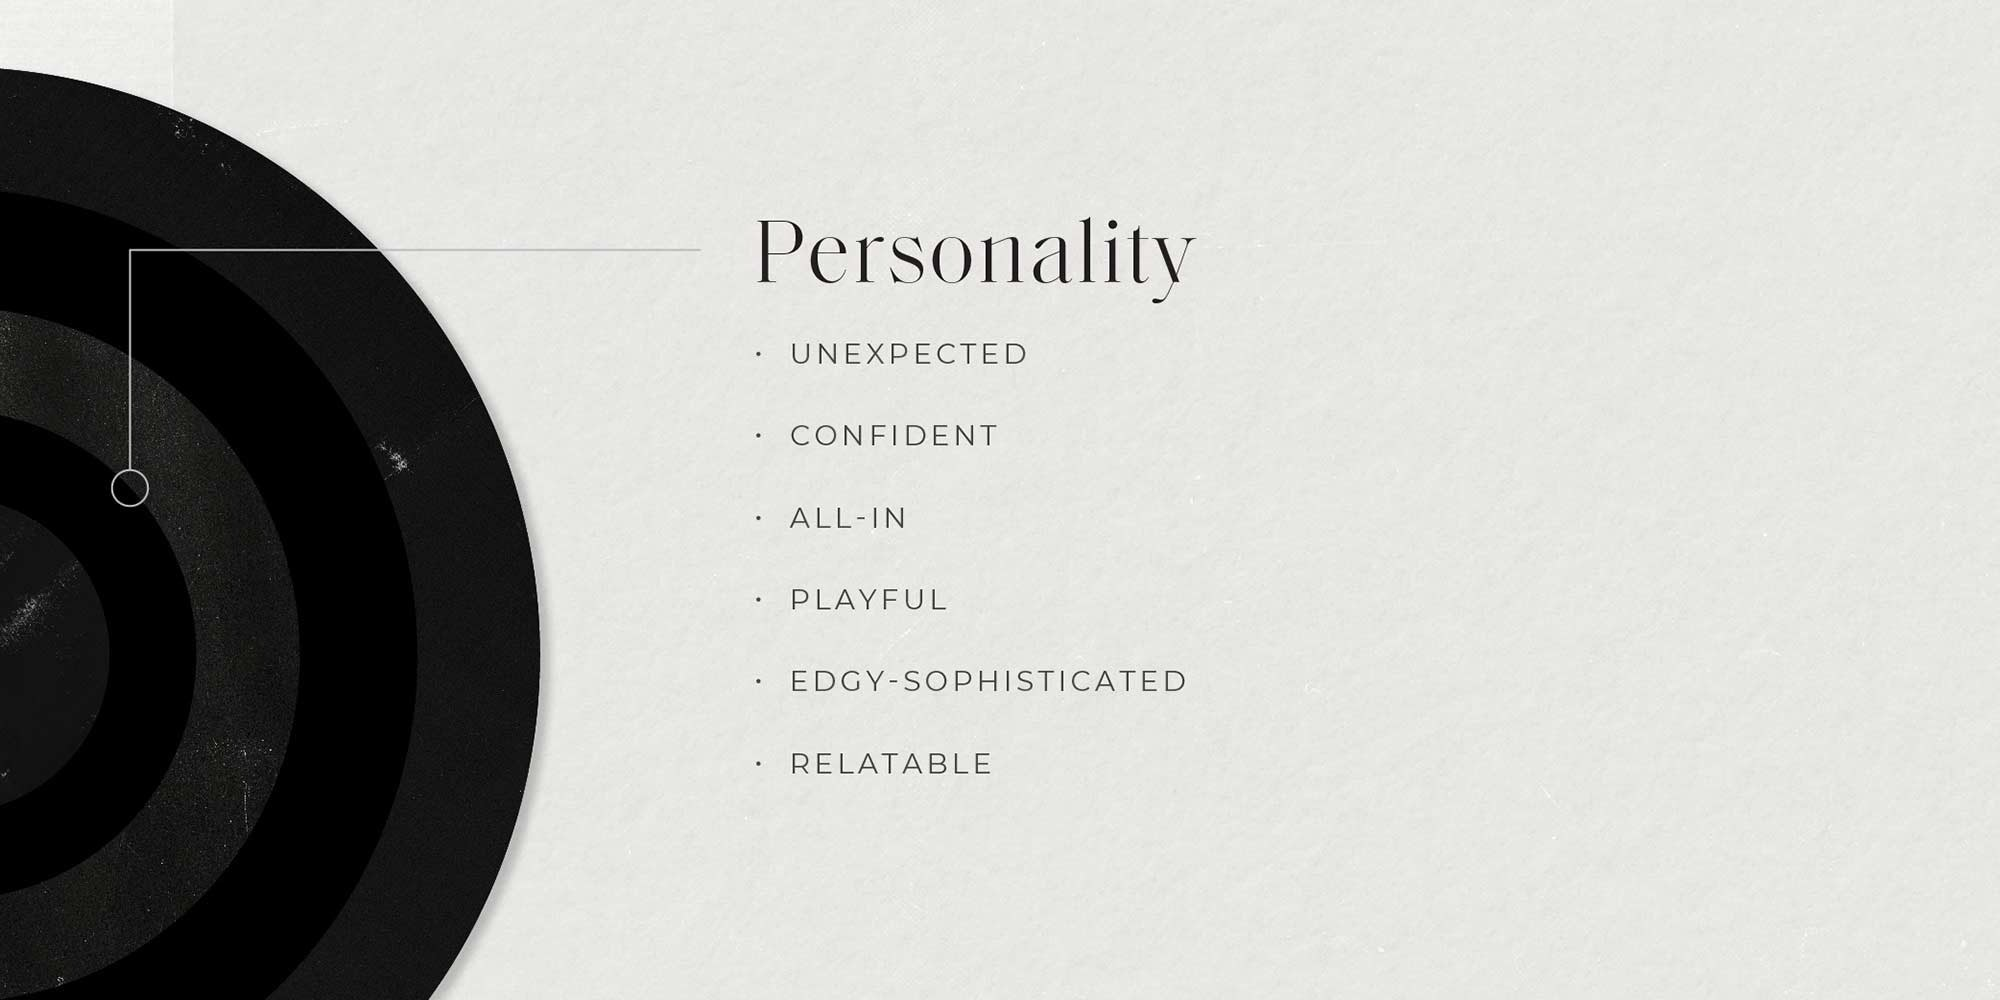 The personality section of the brand wheel